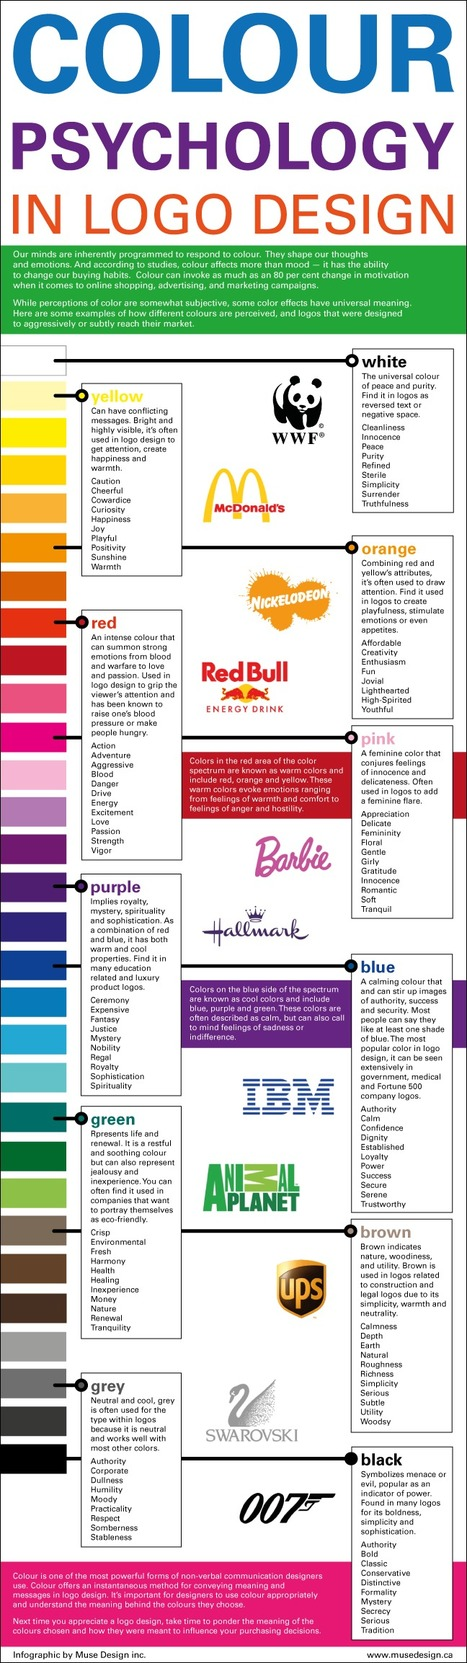 Brand Managers Have A Lot Riding On A Logo | Business 2 Community | color for branding | Scoop.it